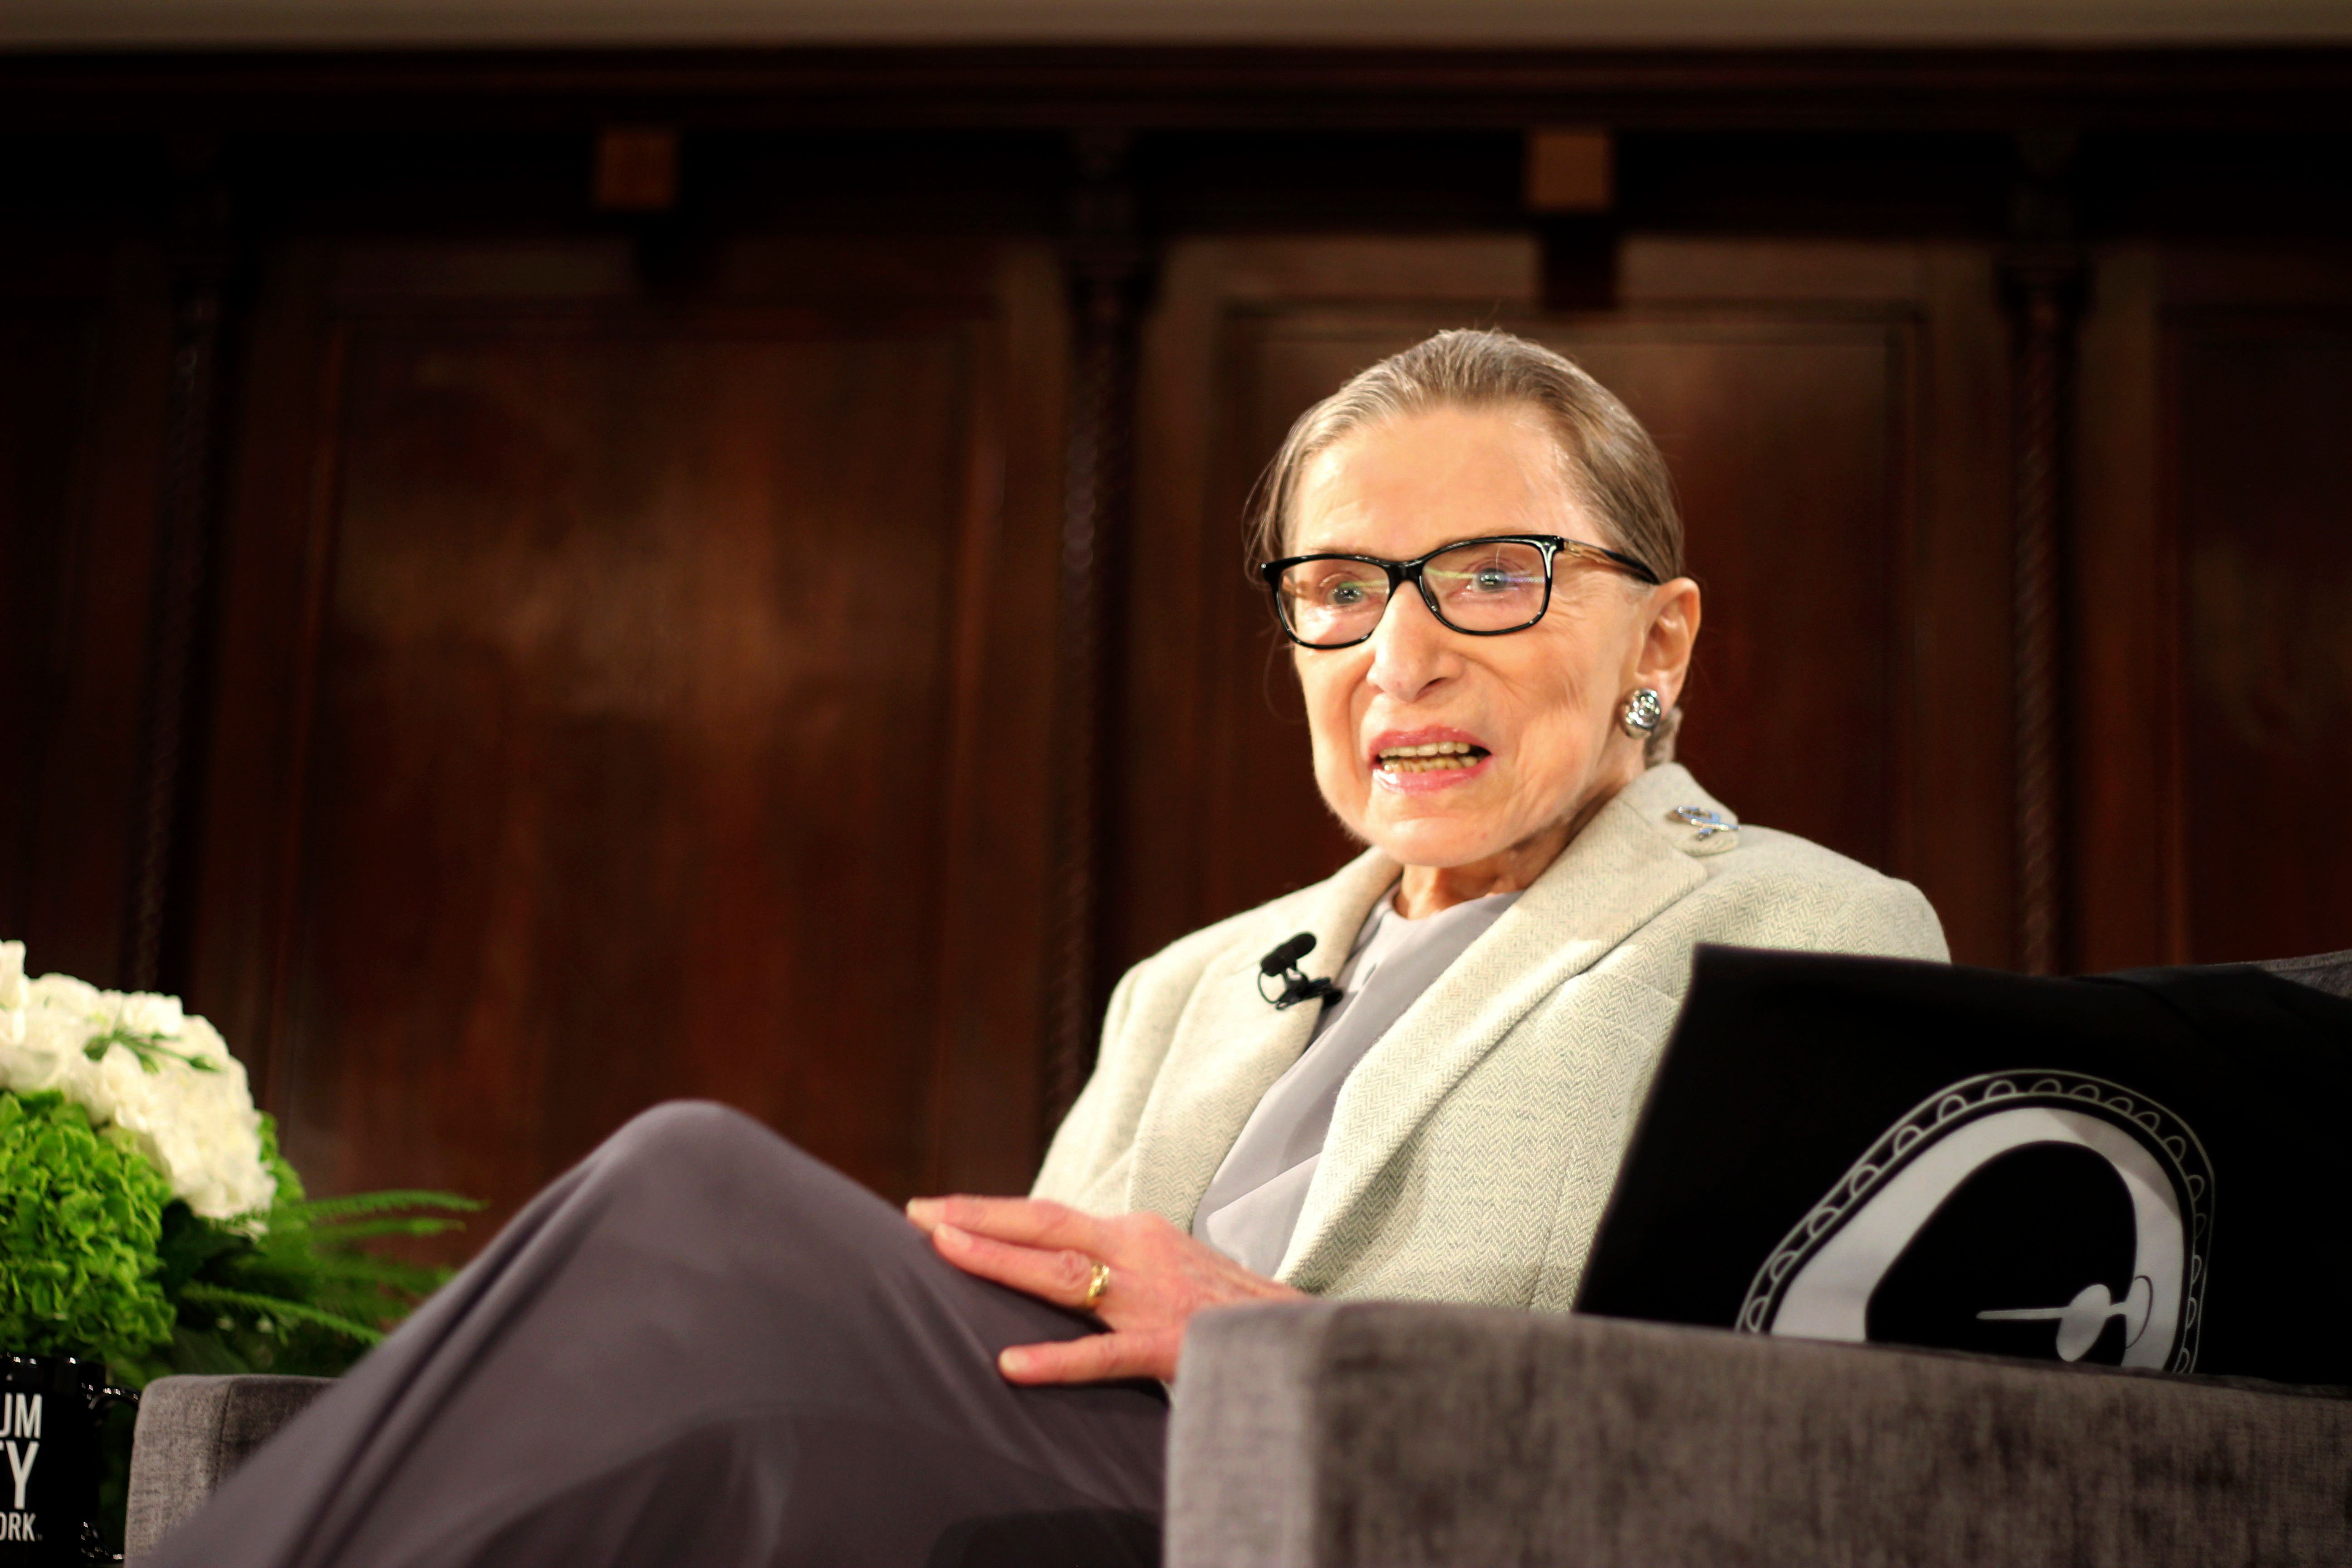 ADDS HELD AT THE NEW YORK ACADEMY OF MEDICINE U.S. Supreme Court Justice Ruth Bader Ginsburg sits onstage as the third speaker of the David Berg Distinguished Speakers Series, during an event organized by the Museum of the City of New York with WNET-TV held at the New York Academy of Medicine Saturday, Dec. 15, 2018, in New York. NPR legal correspondent Nina Totenberg led a question-and-answer session about Ginsburg's quarter century on the Supreme Court, and about her life. (AP Photo/Rebecca Gibian)